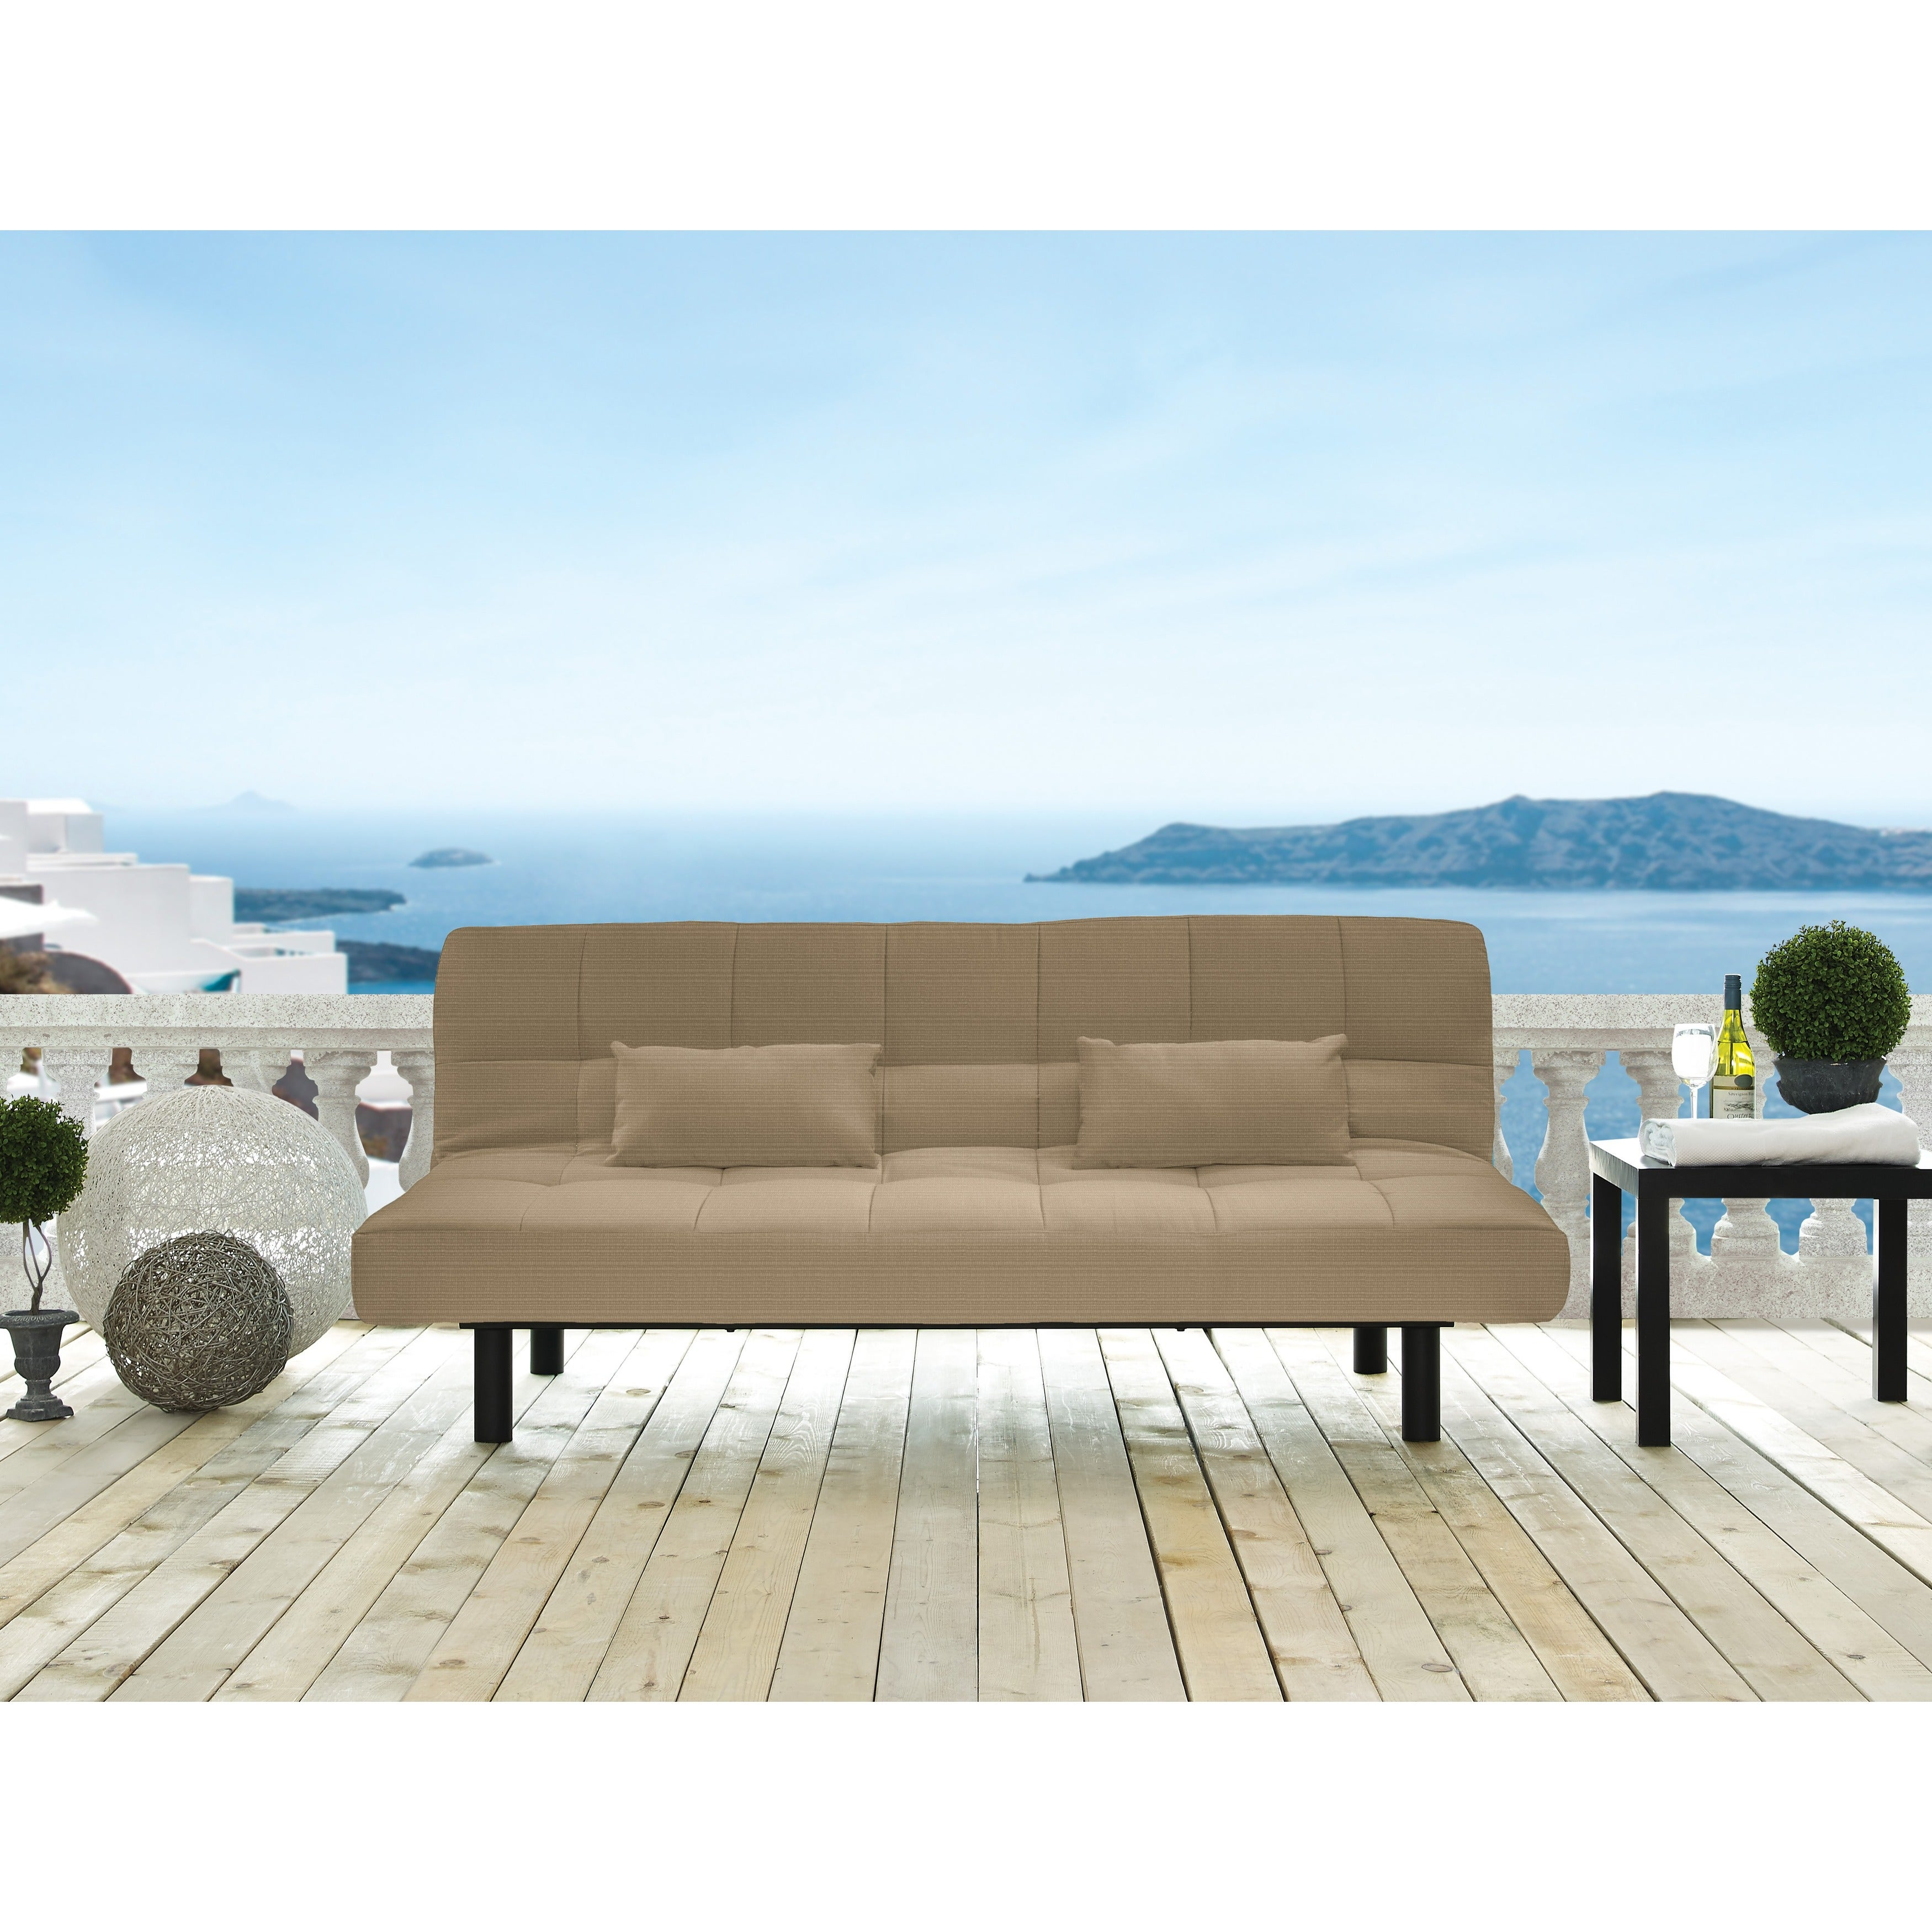 Serta Santa Cruz Brown Pool and Deck Convertible Sofa by ...